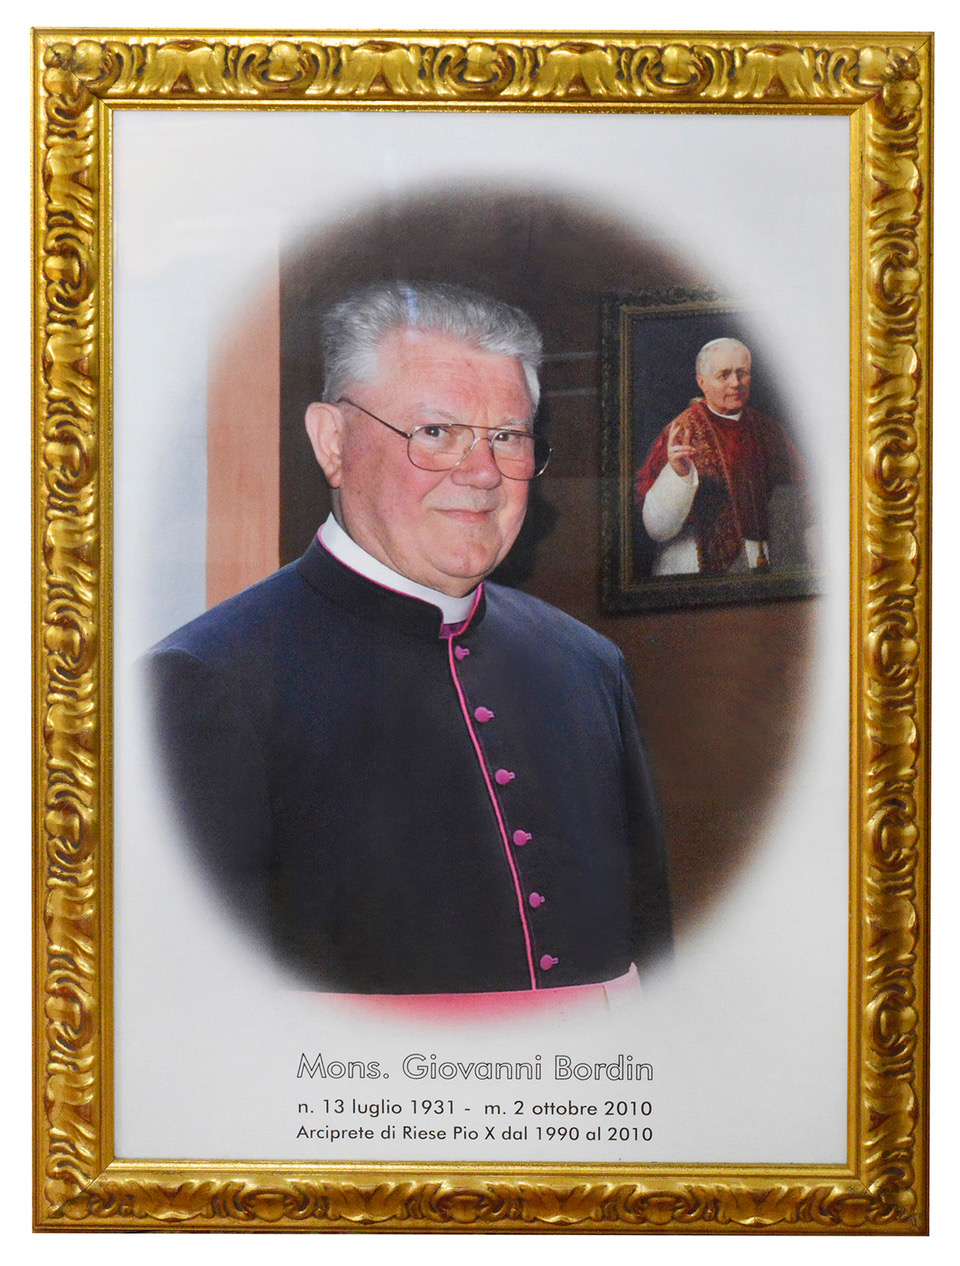 Mons Giovanni Bordin